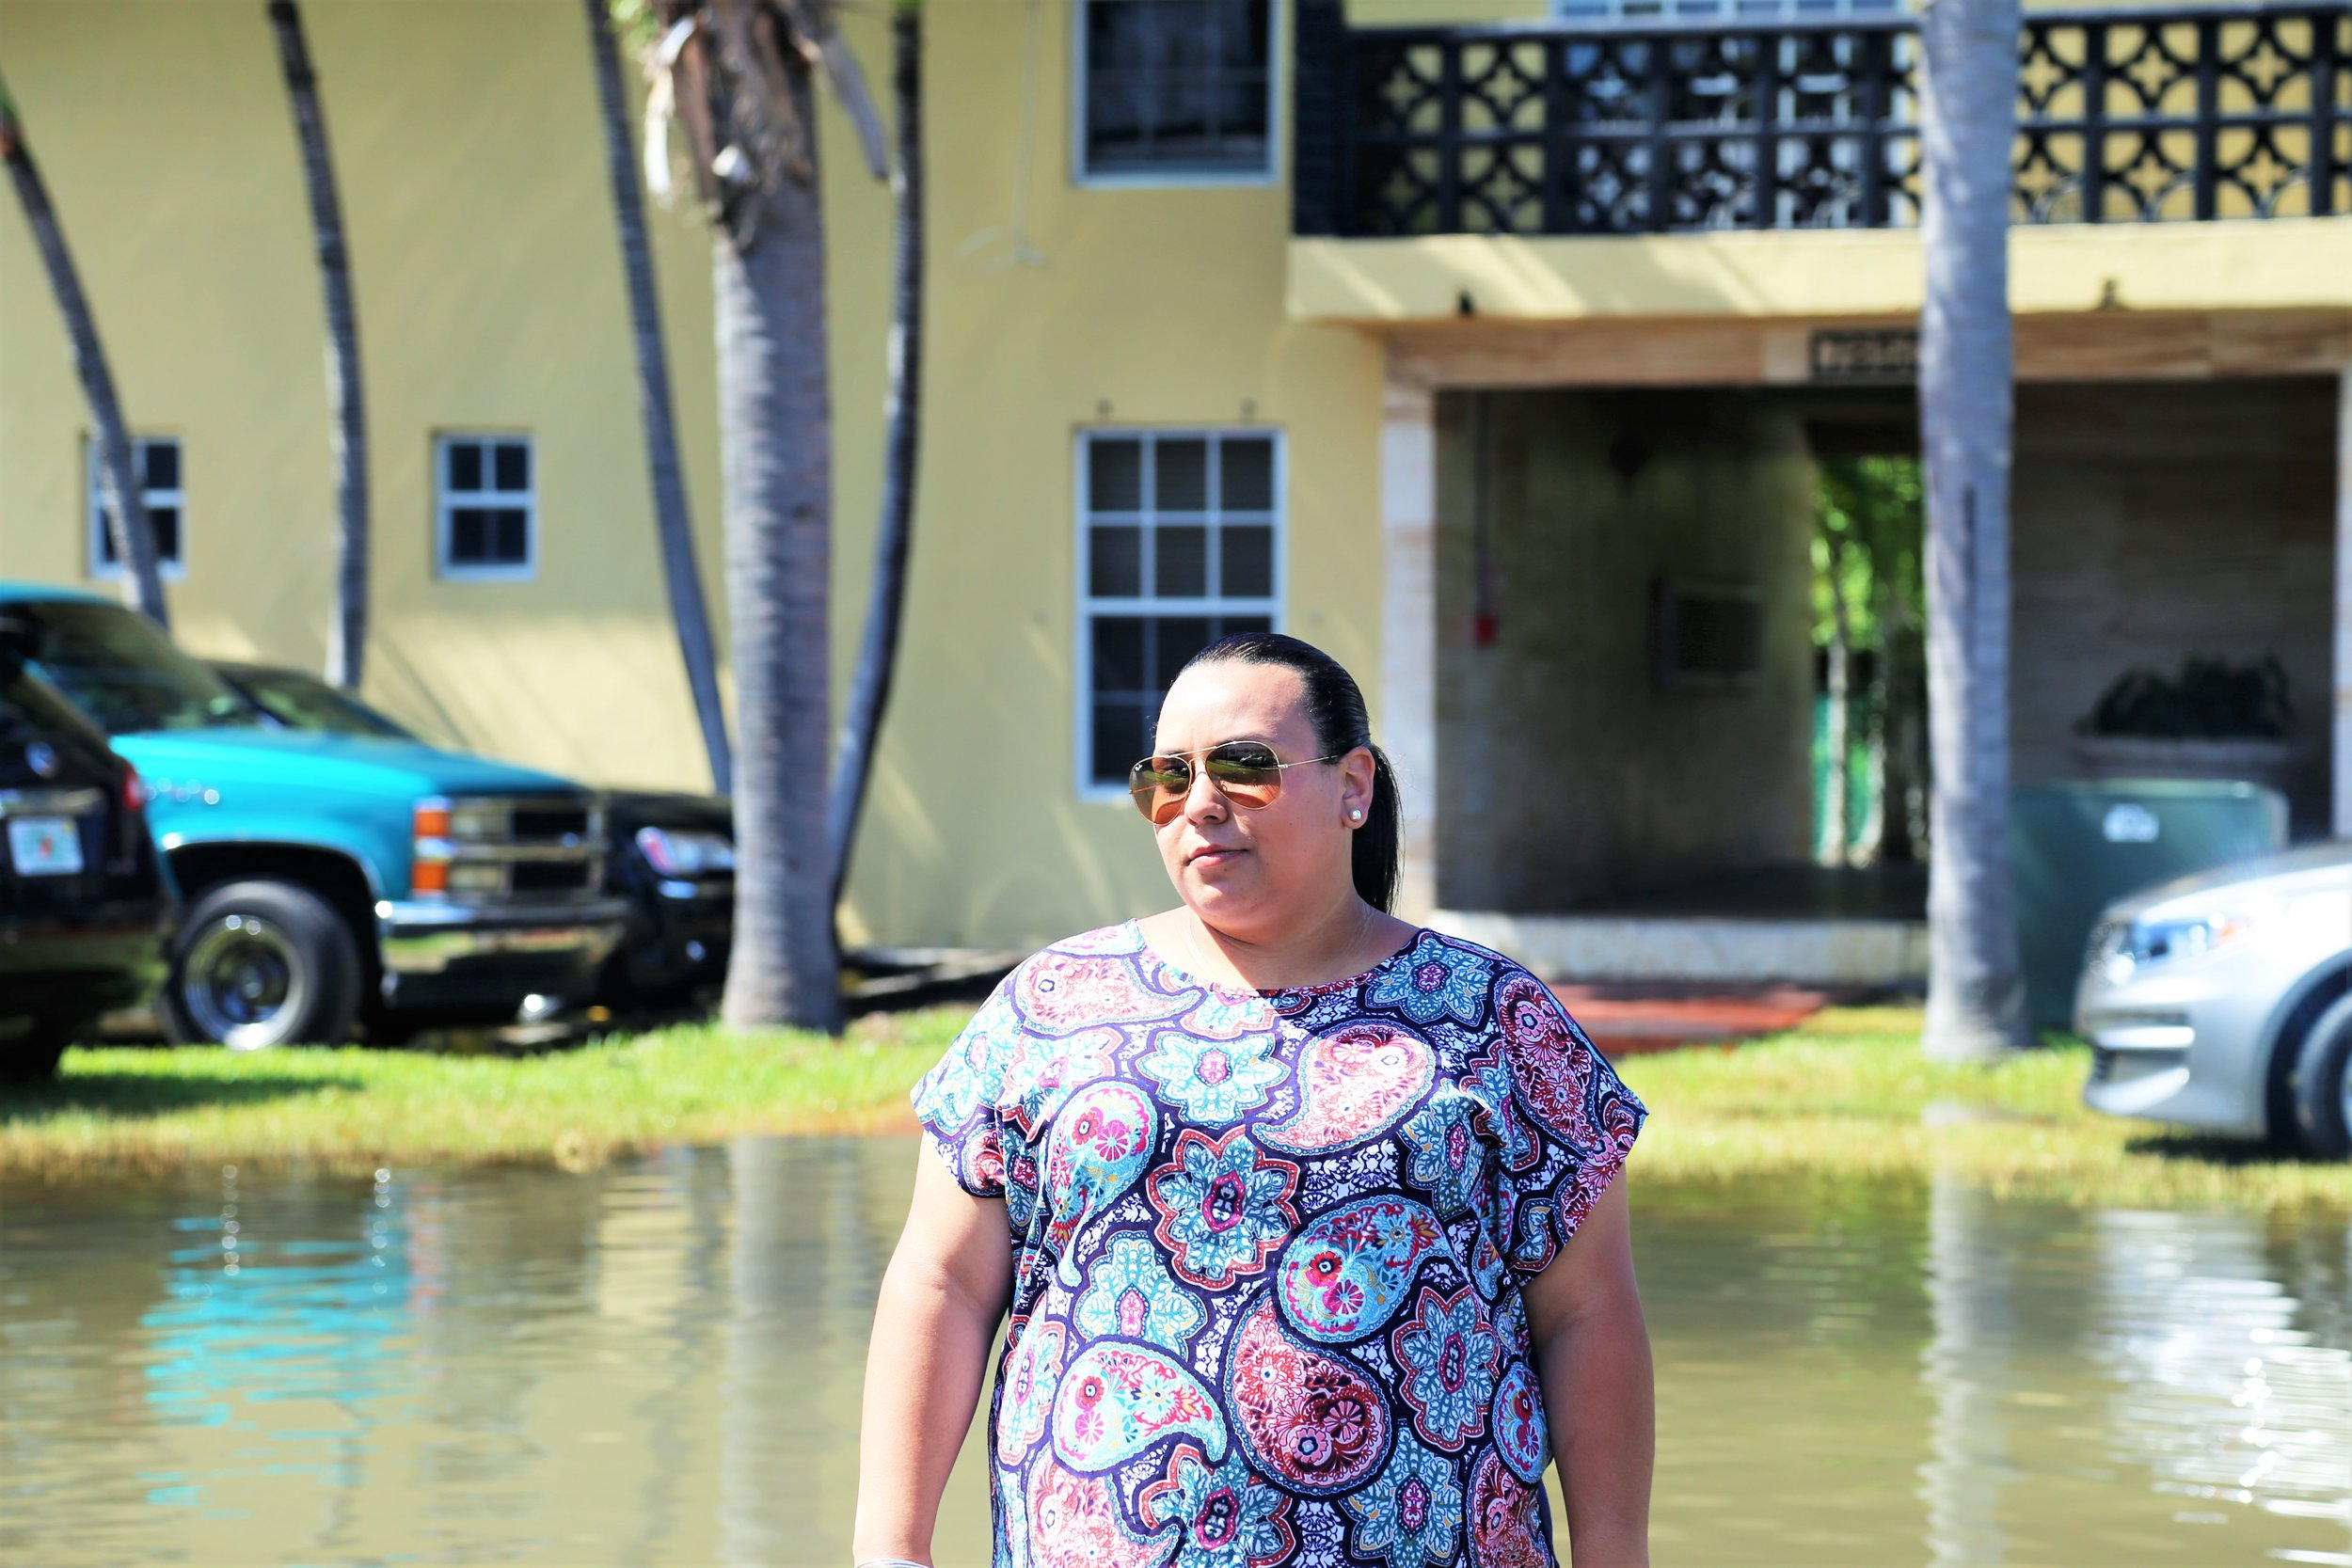 Karina during king tides in October of 2016 outside an apartment building in the community of Shorecrest, Miami. Photo: Dayna Reggero, Climate Listening Project.